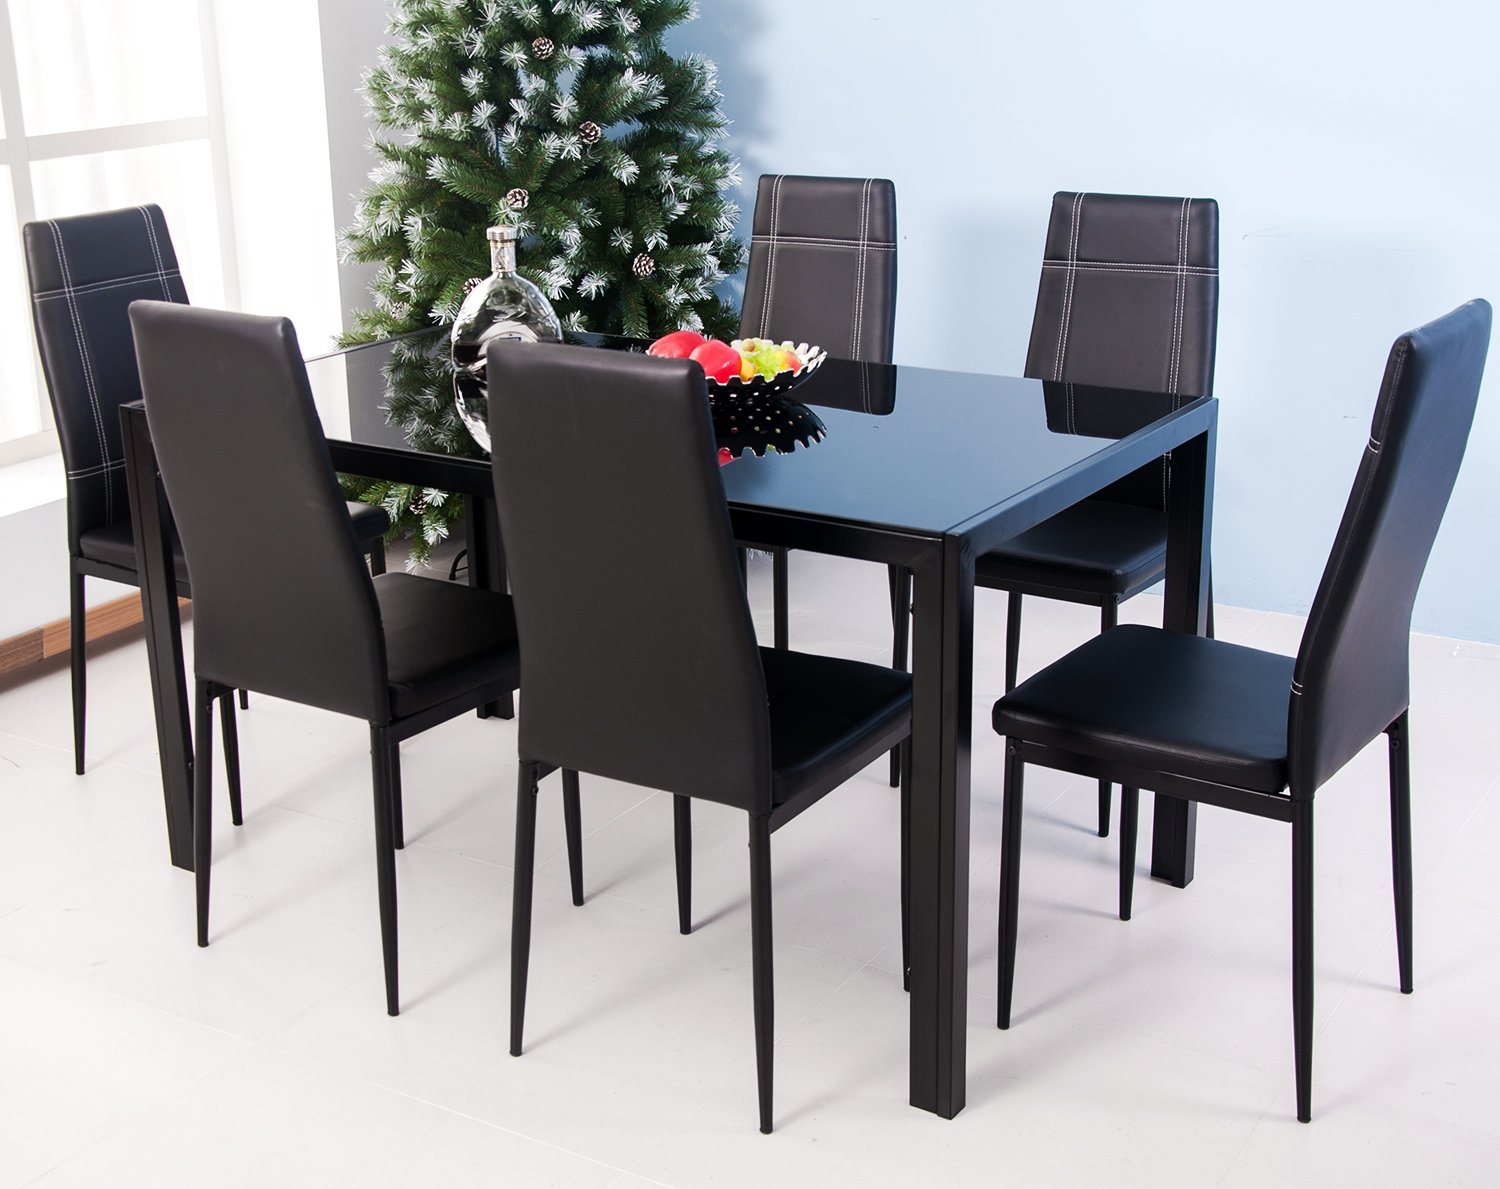 Amazon.com - Merax 7-Piece Glass Top Dining Set - Table & Chair Sets